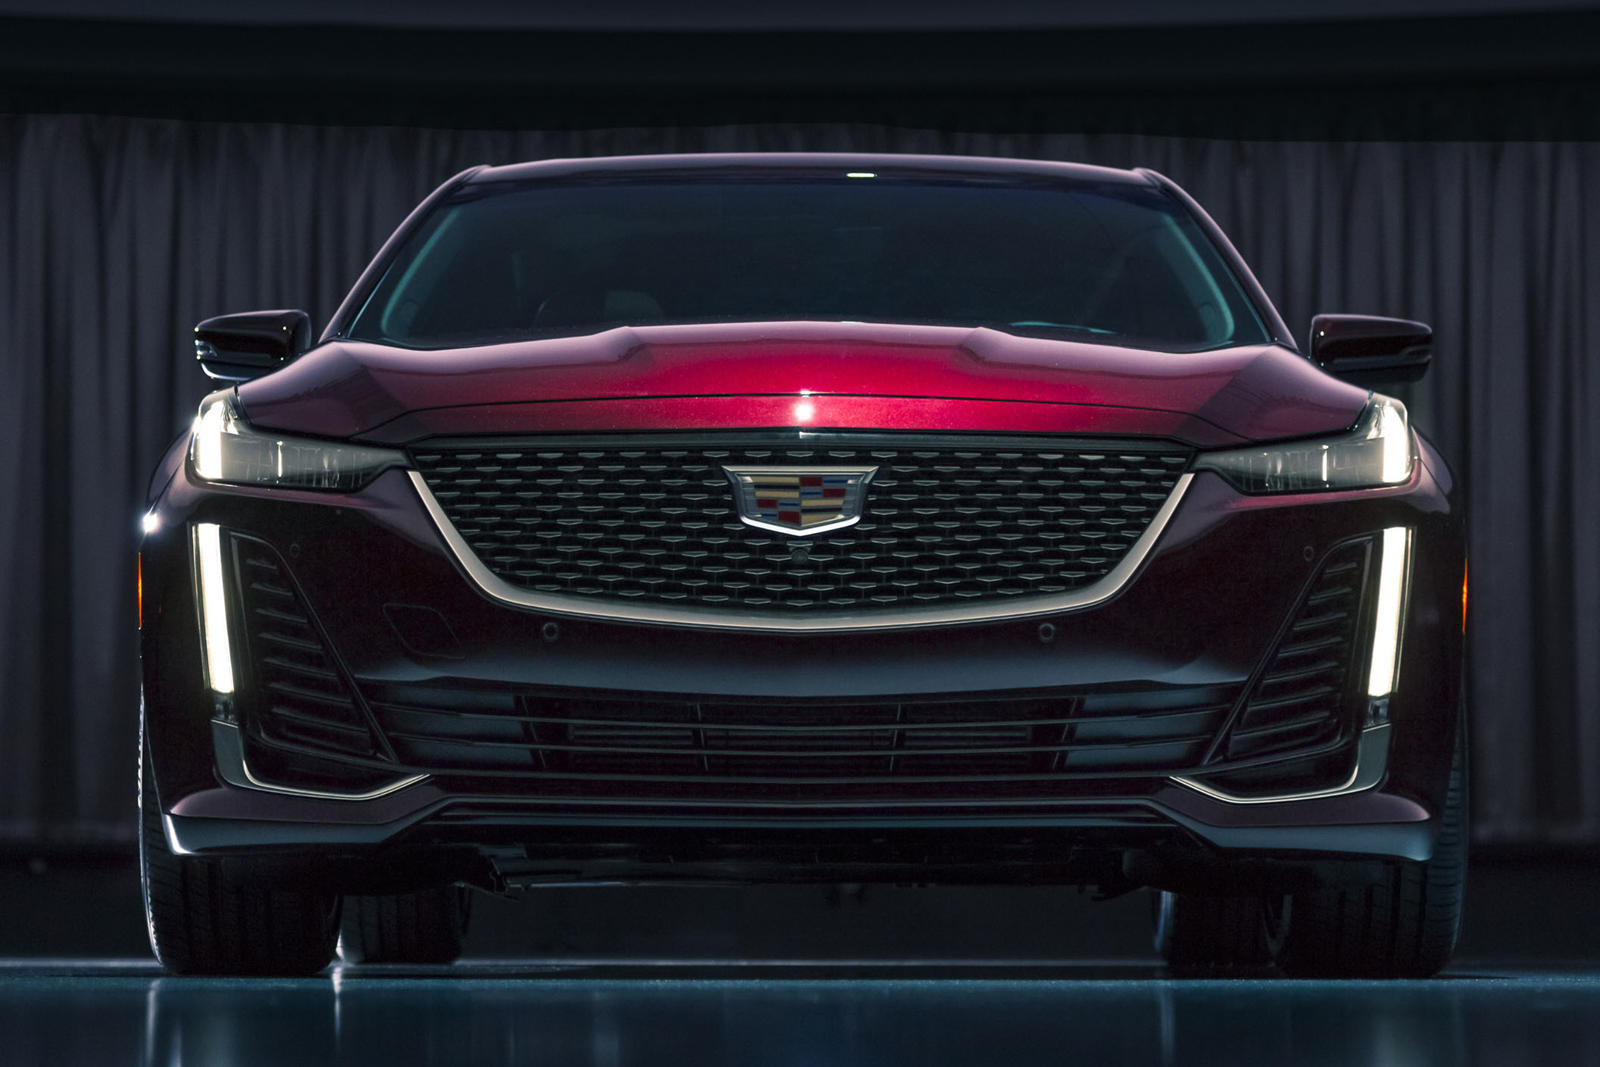 Feast Your Eyes On The All-New 2020 Cadillac CT5 Sedan - CarBuzz